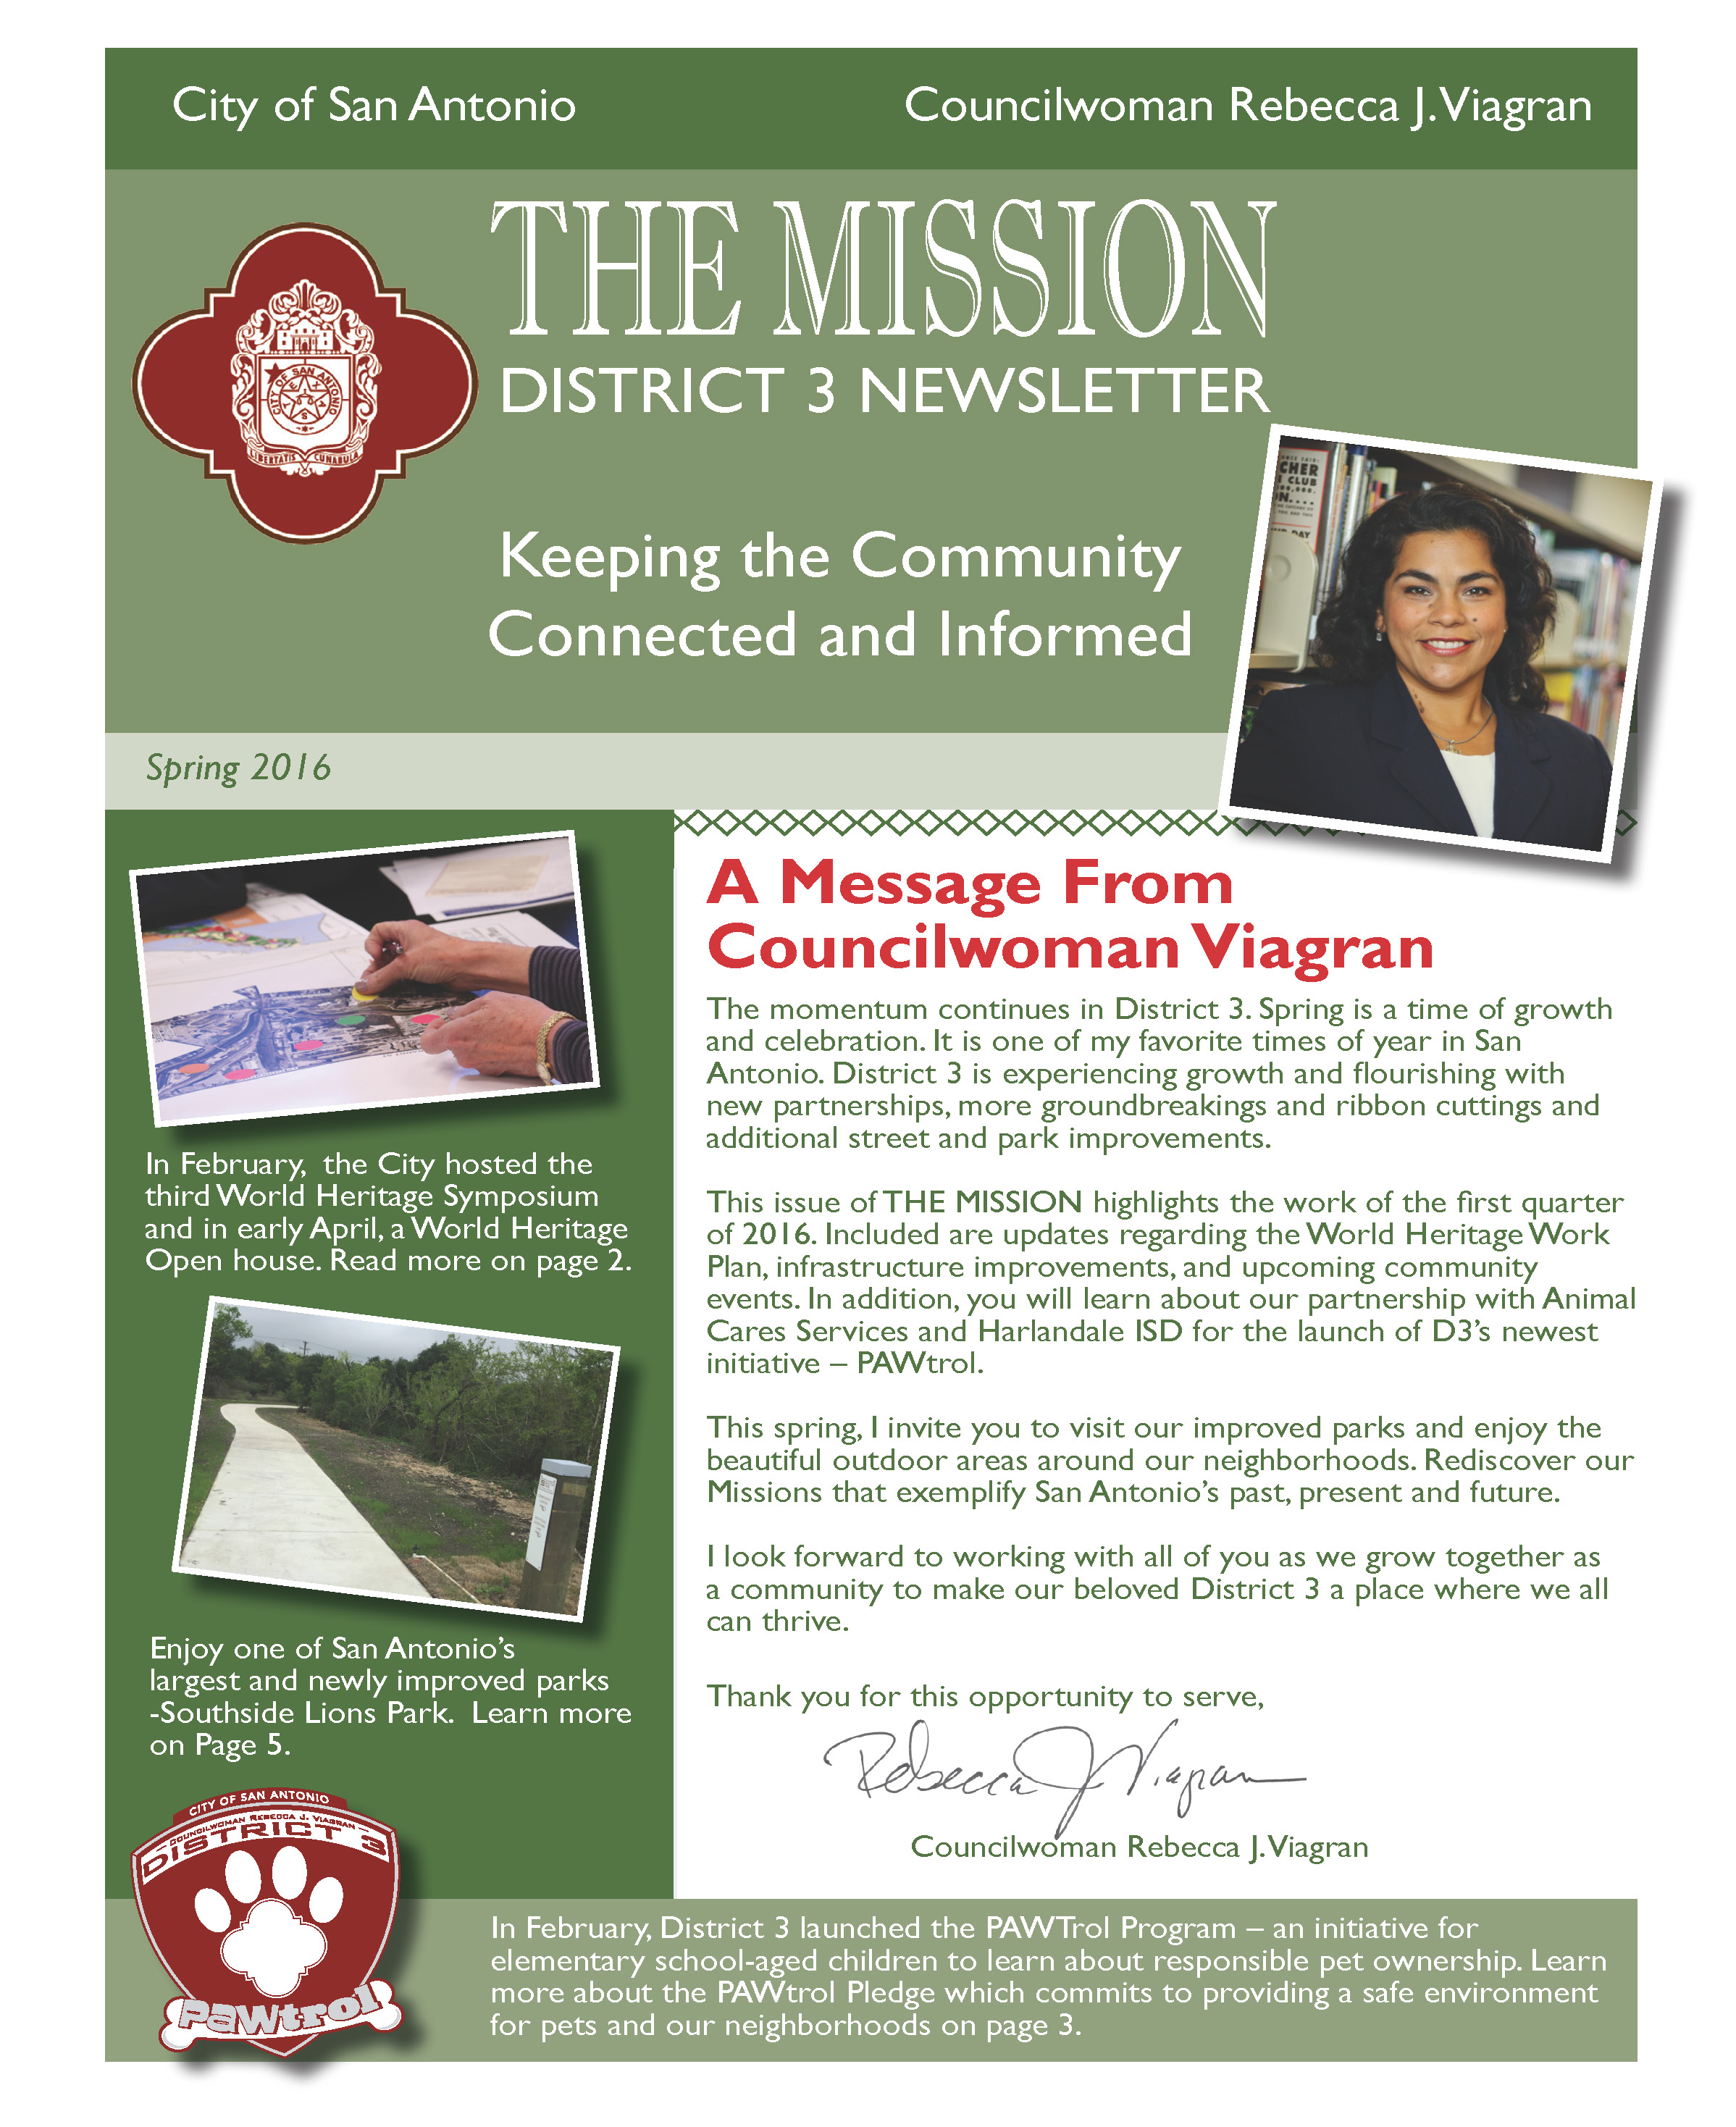 District 3 Newsletter - Spring 2016